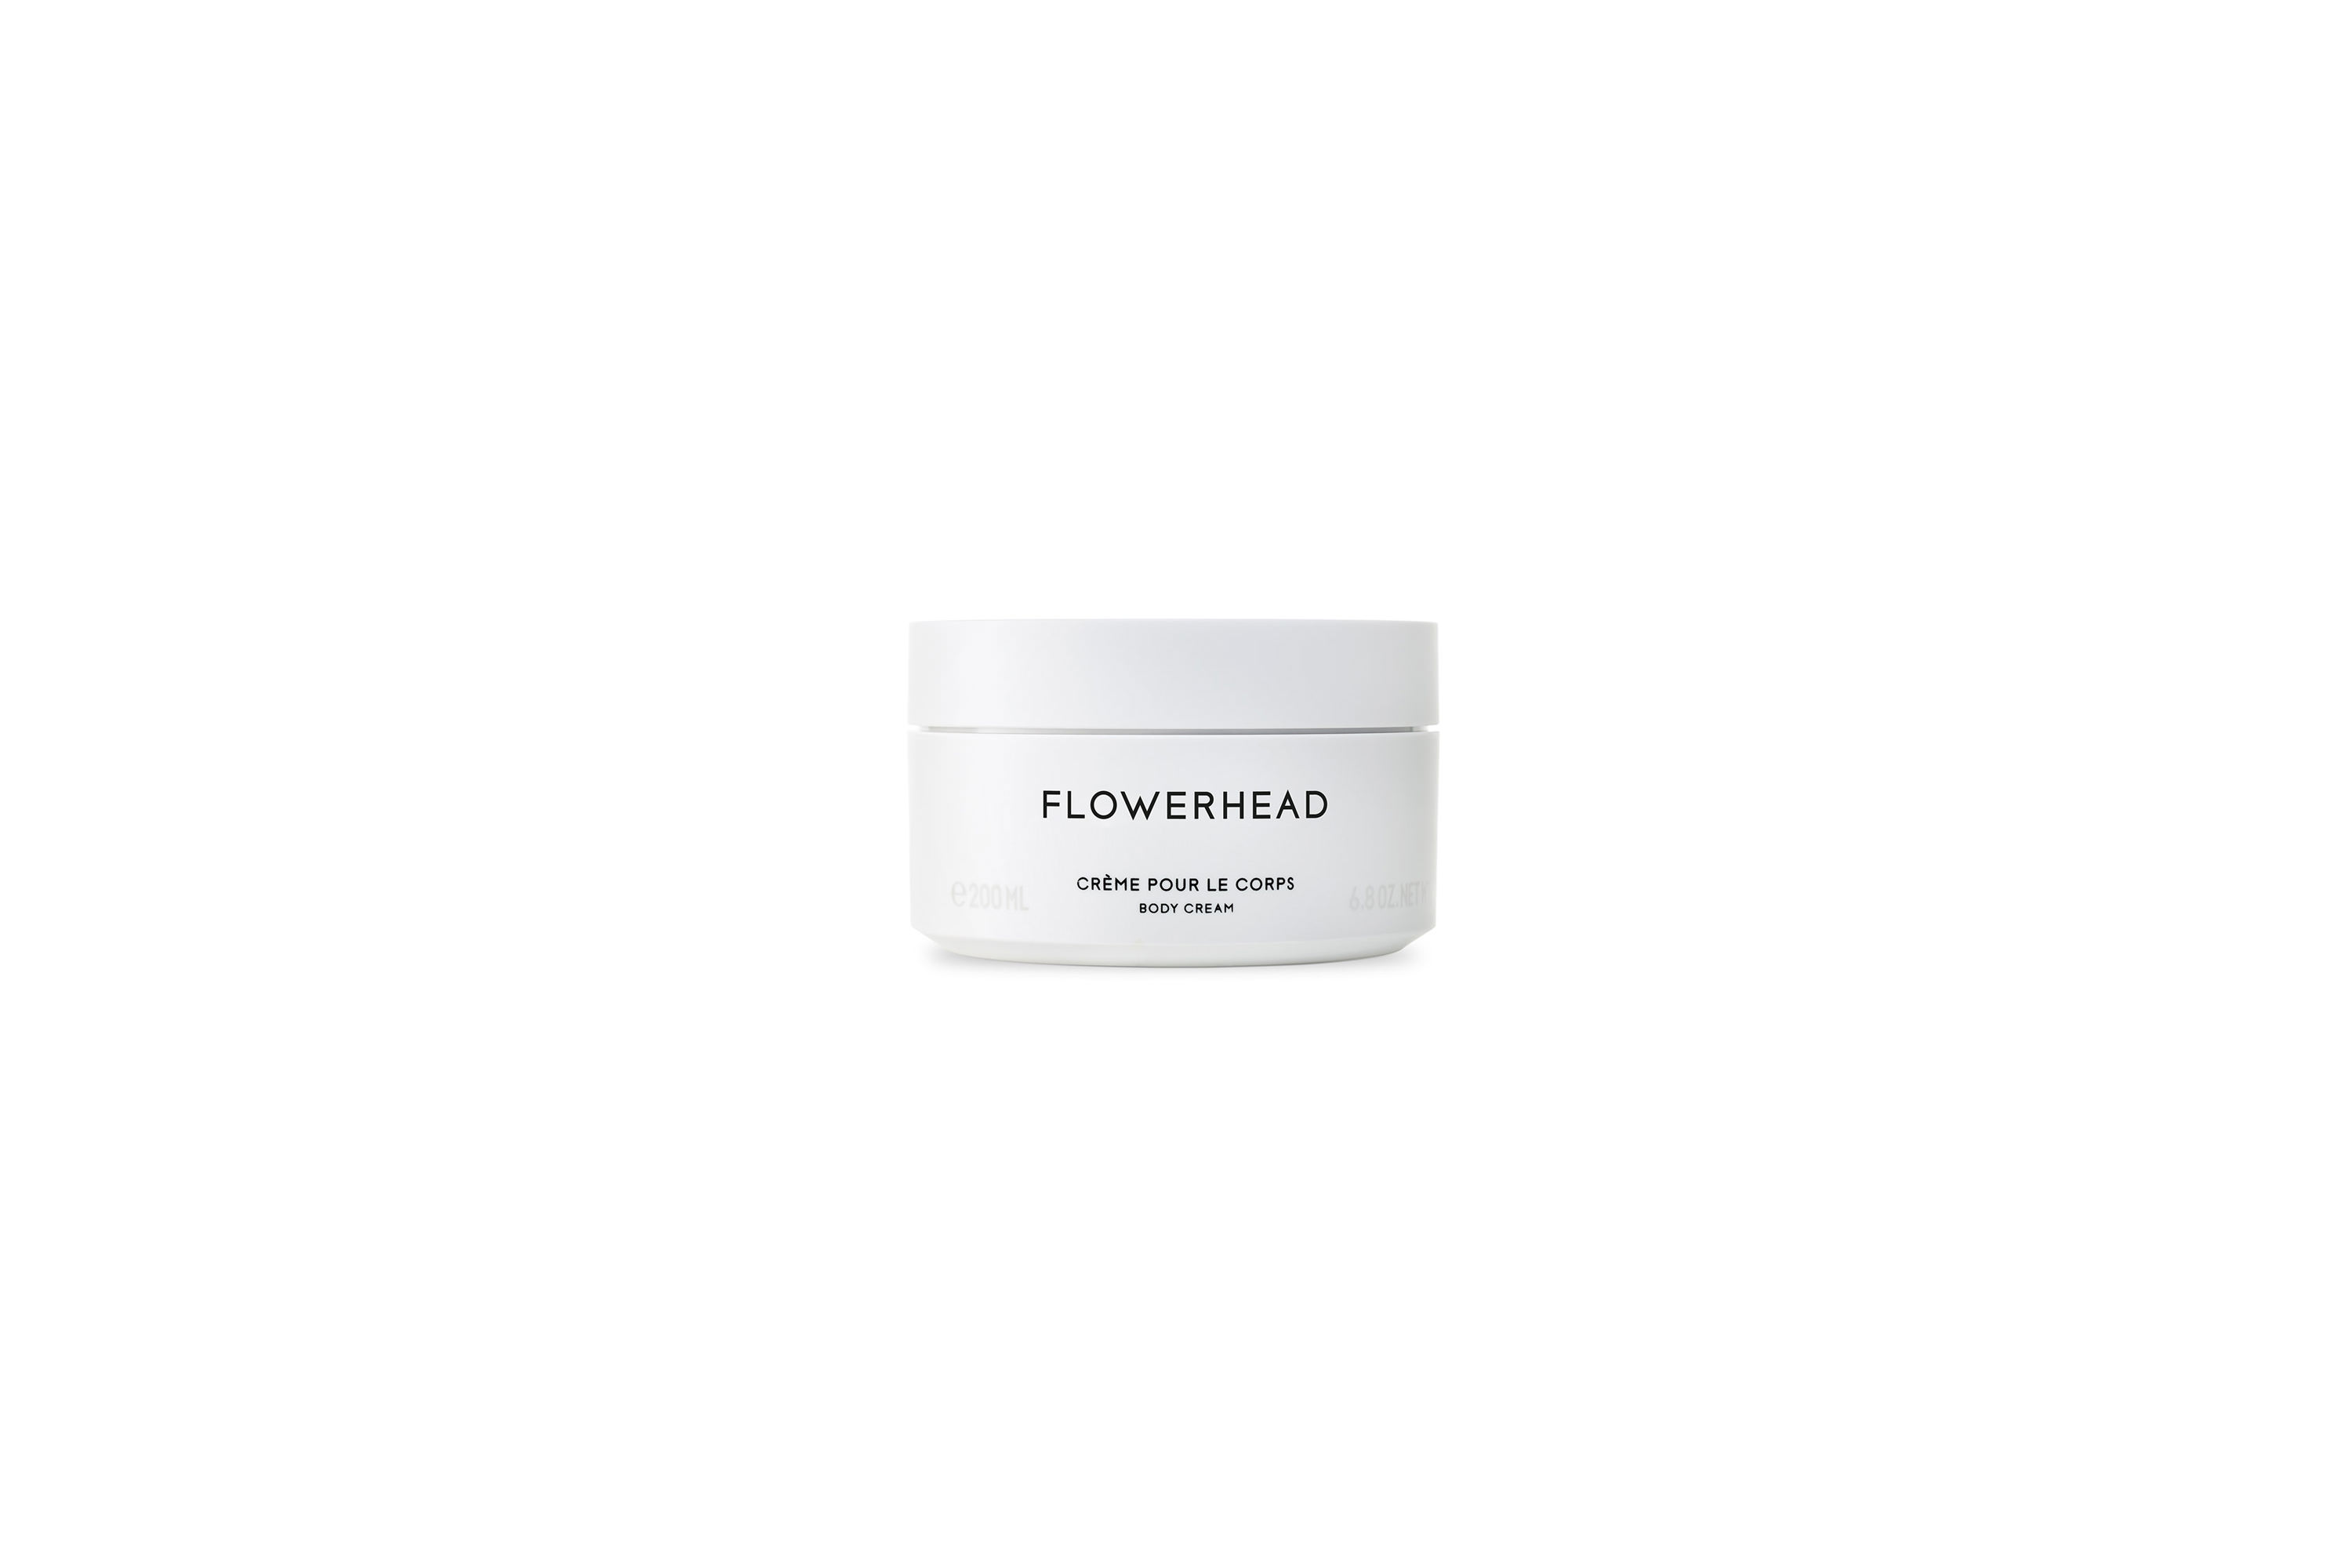 Flowerhead Body Cream